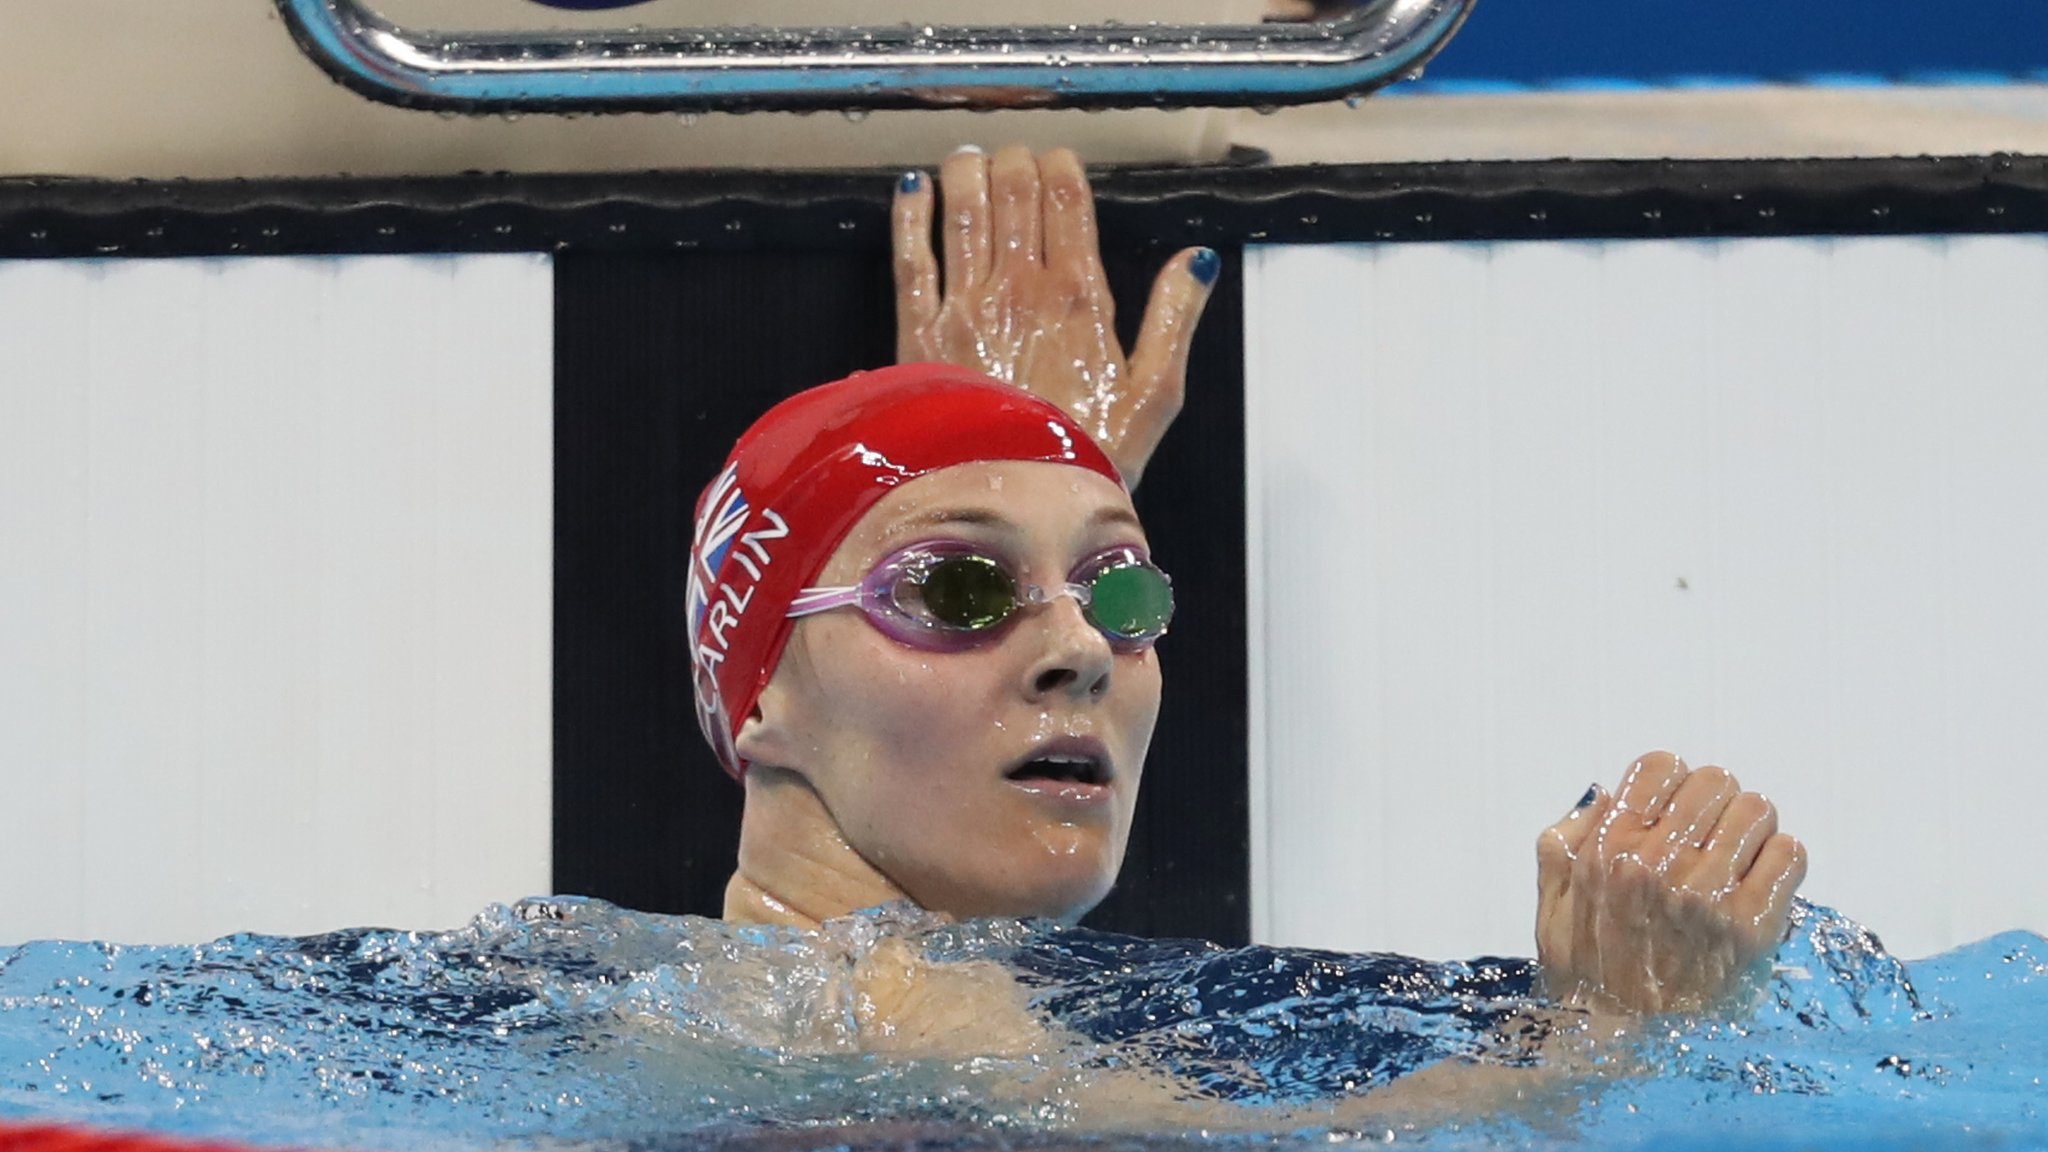 Jazz Carlin: Double Olympic medallist 'taking time out' from swimming